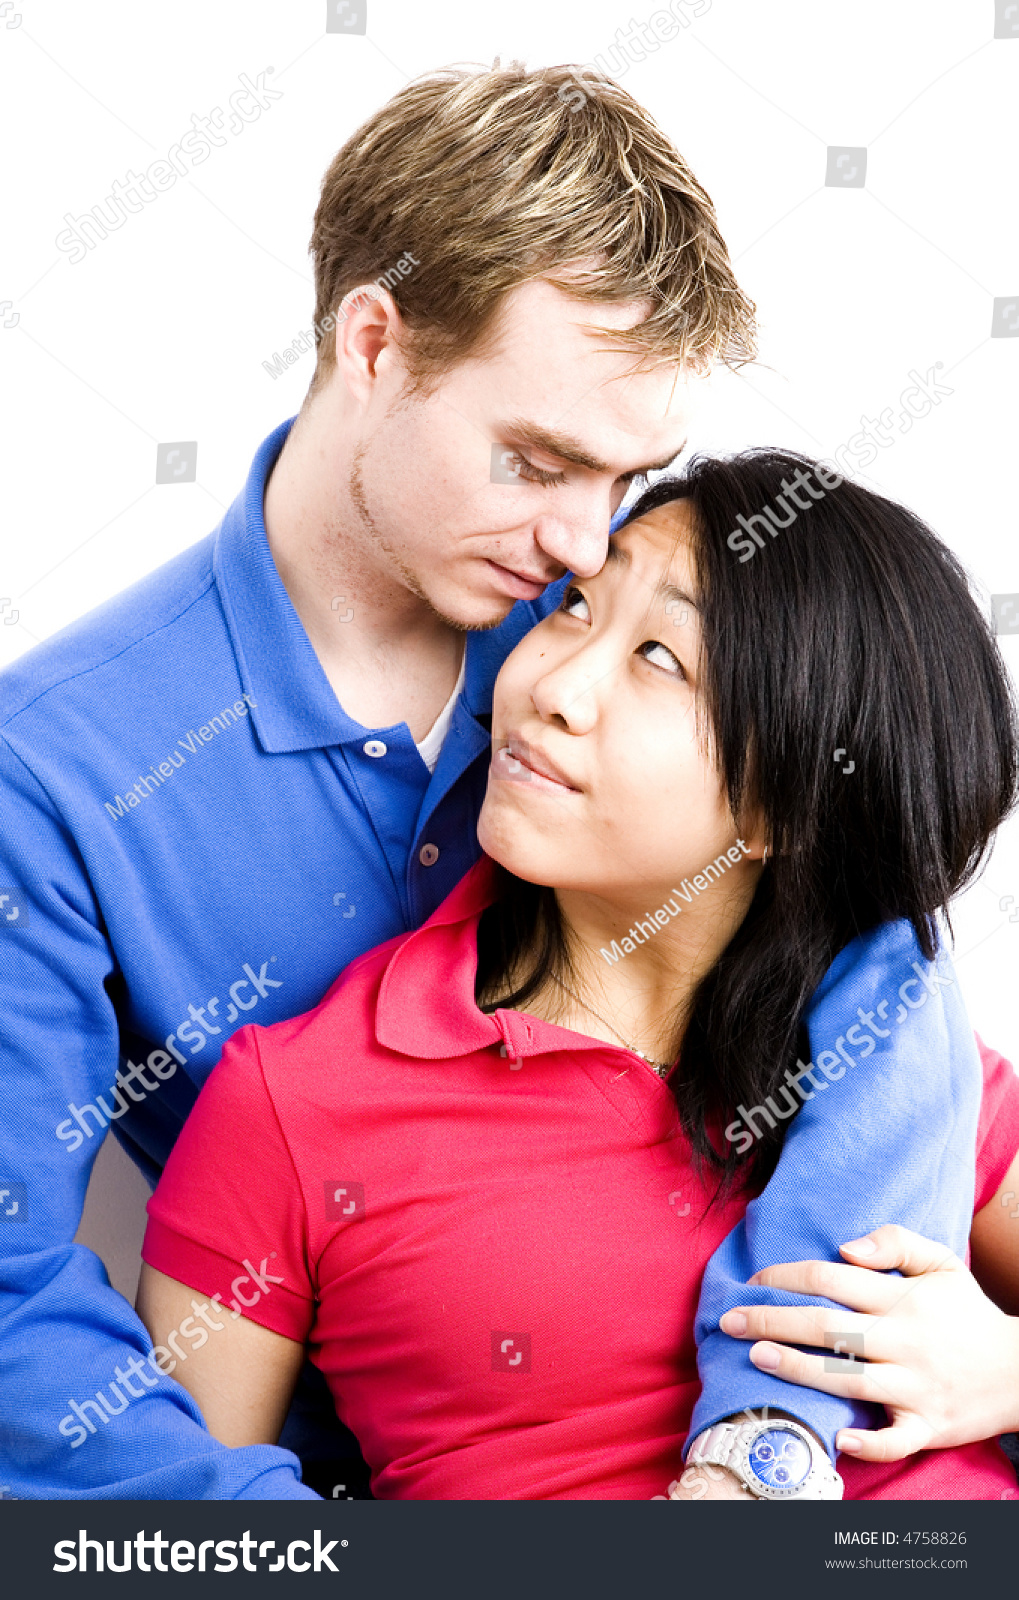 Interacial Complete young interacial couple picture series stock photo 4758826